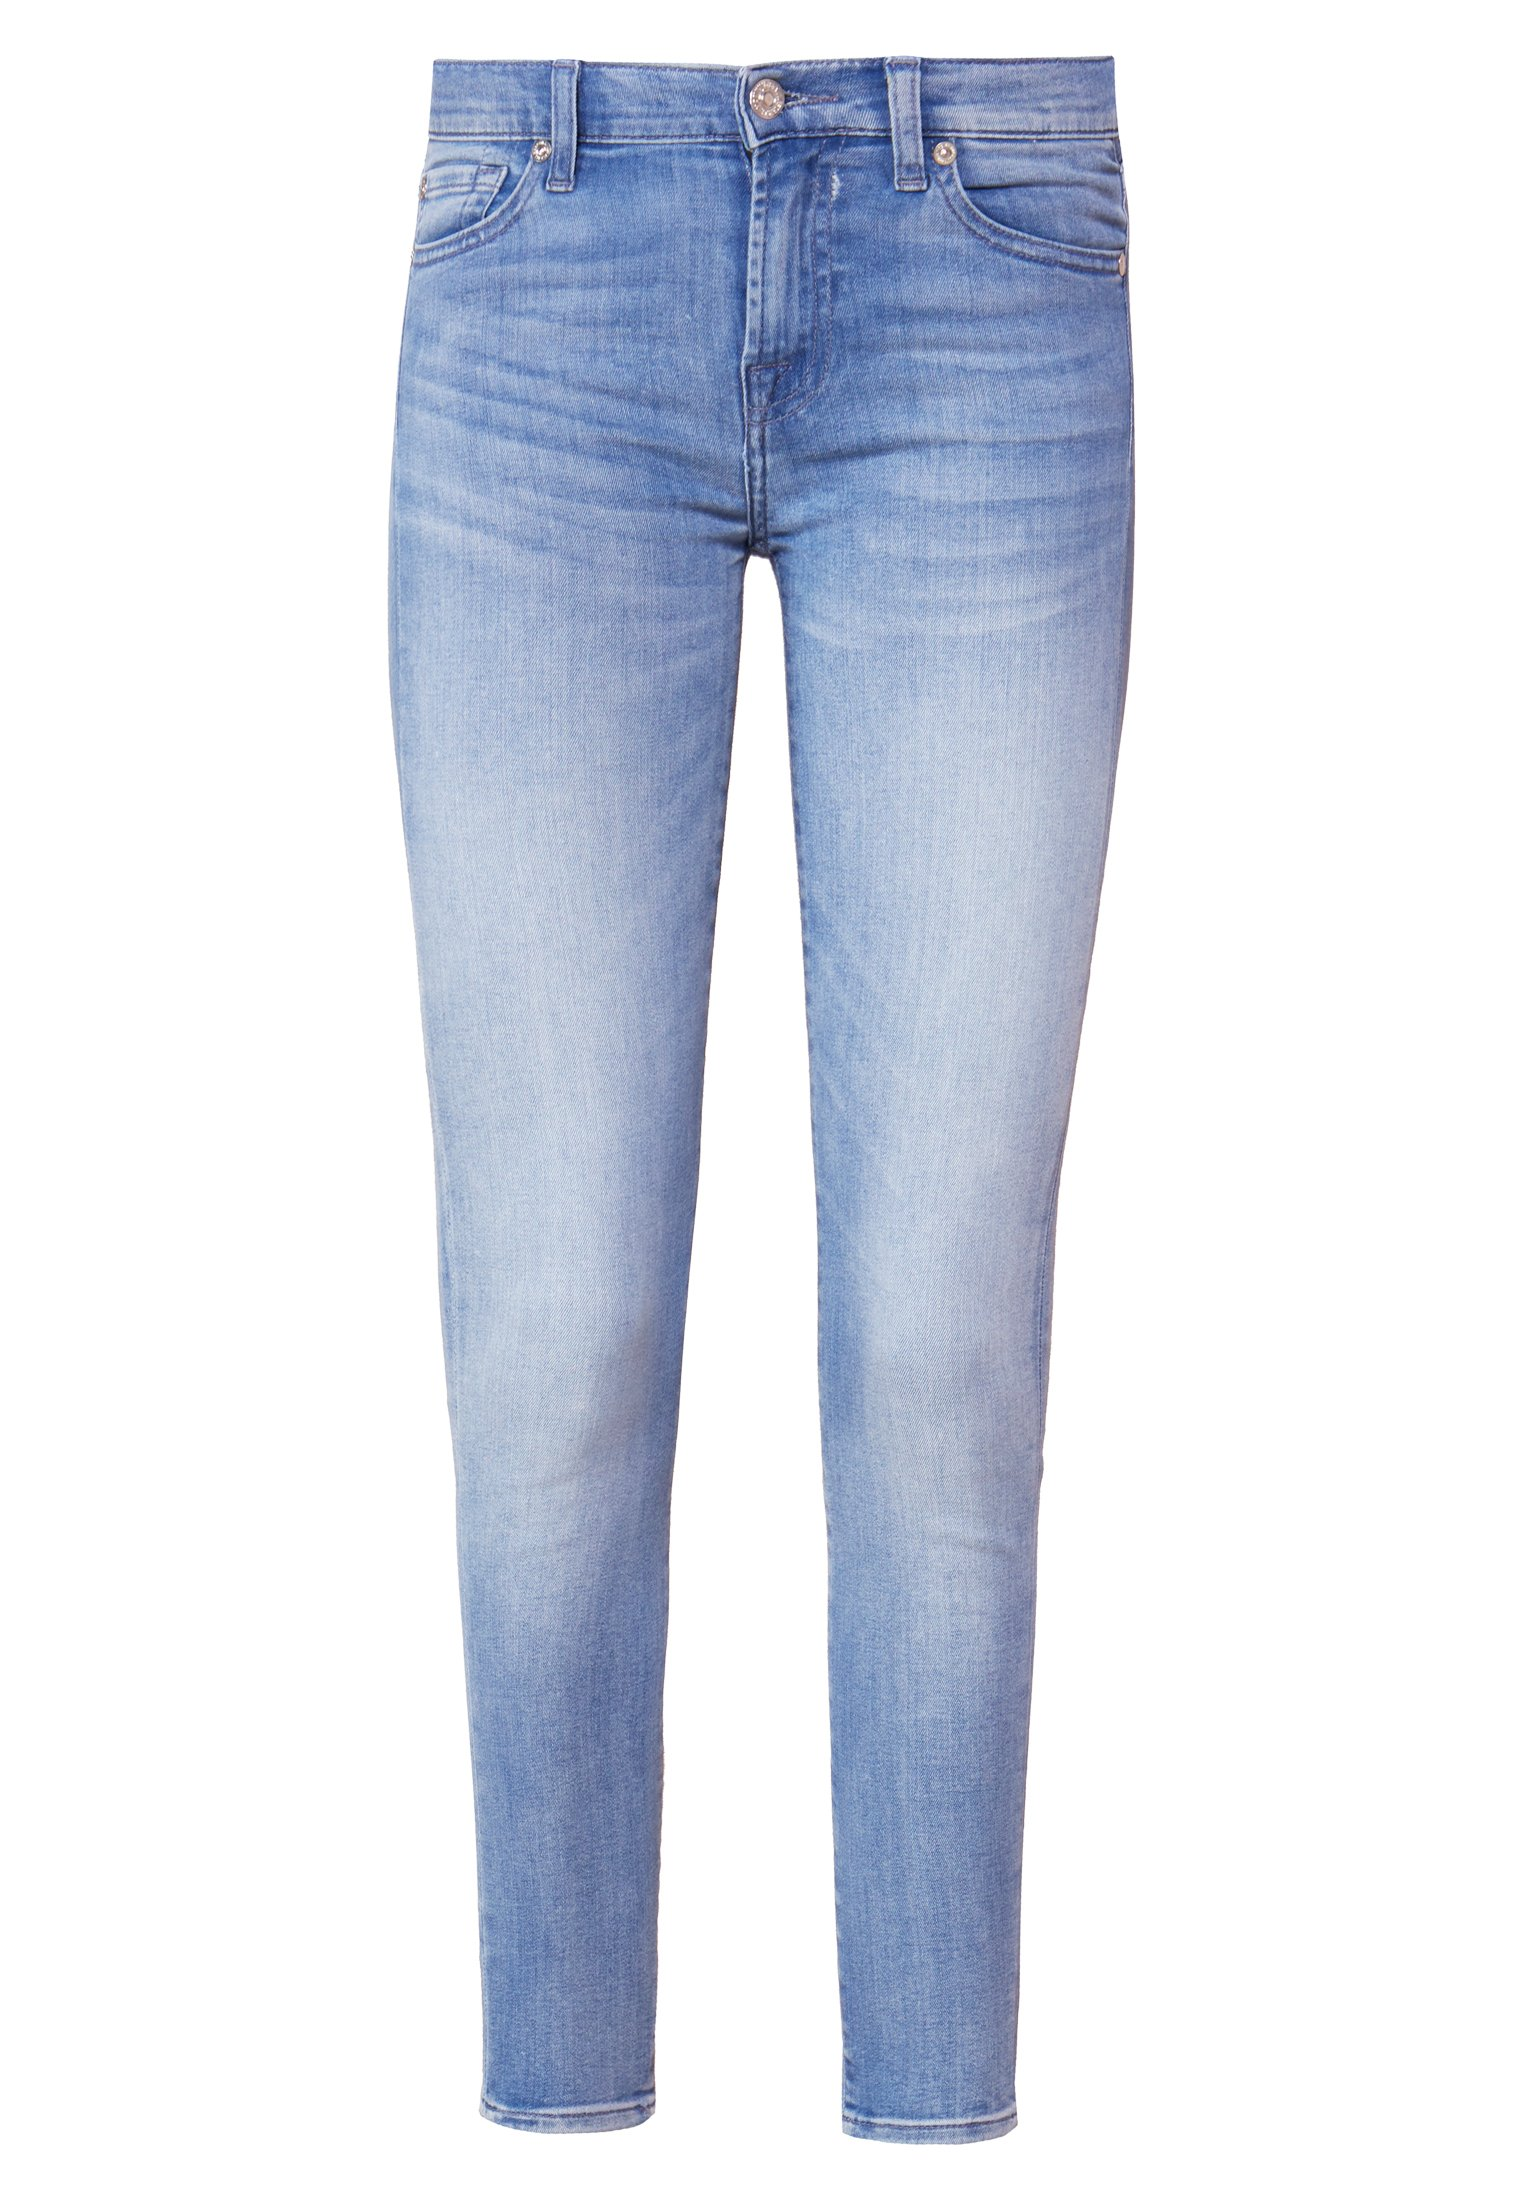 7 for all mankind Jeans Skinny Fit - bair mirage yP6qdrg7